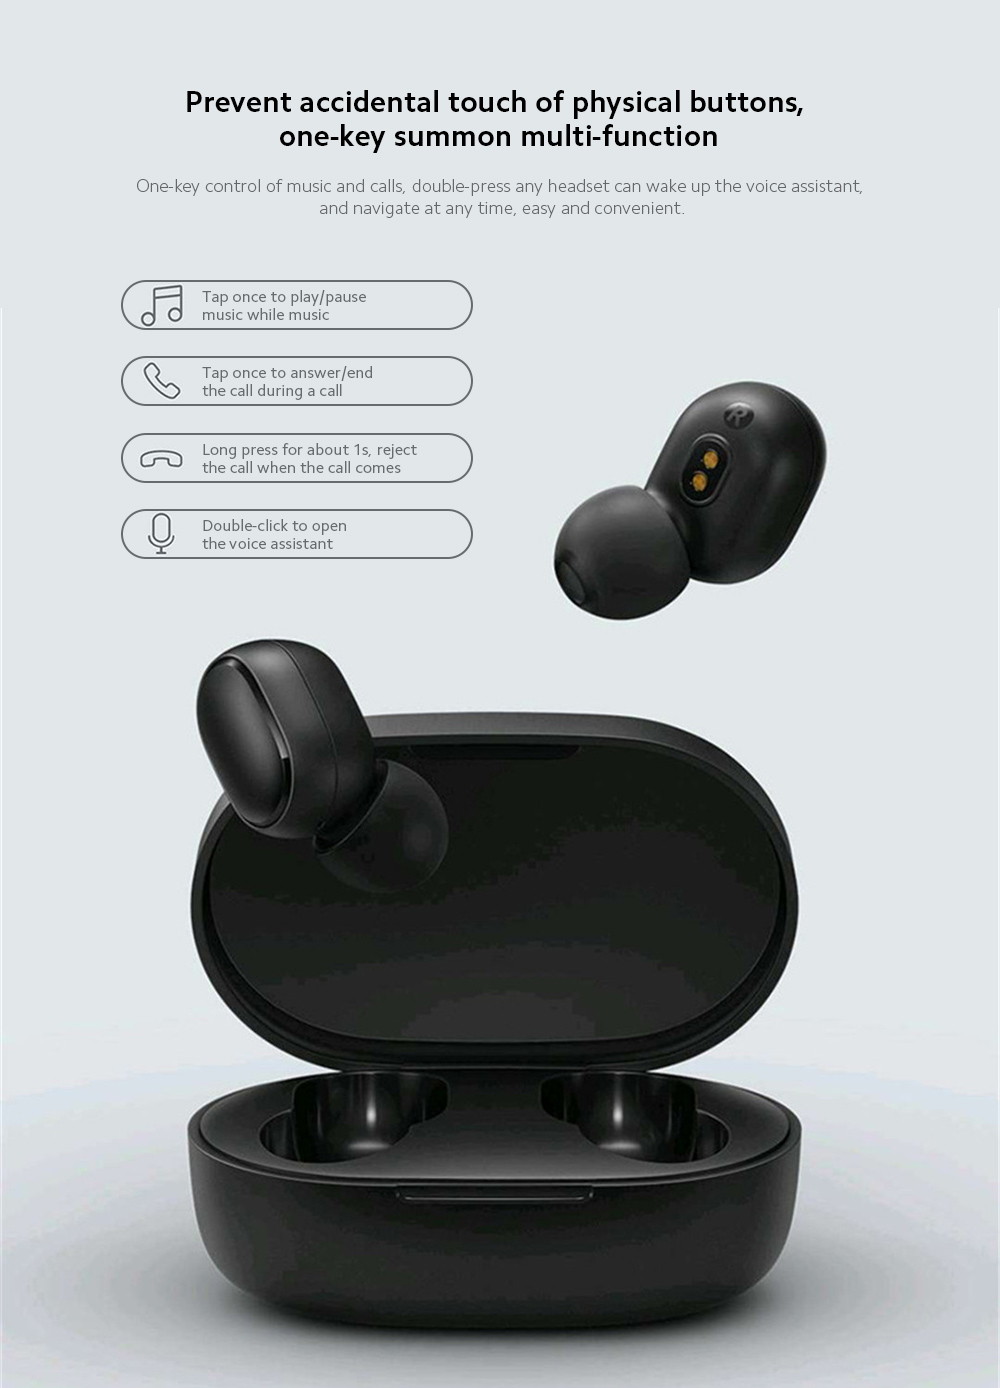 Xiaomi Airdots 2 Wireless Earphone Prevent accidental touch of physical buttons, one-key summon multi-function